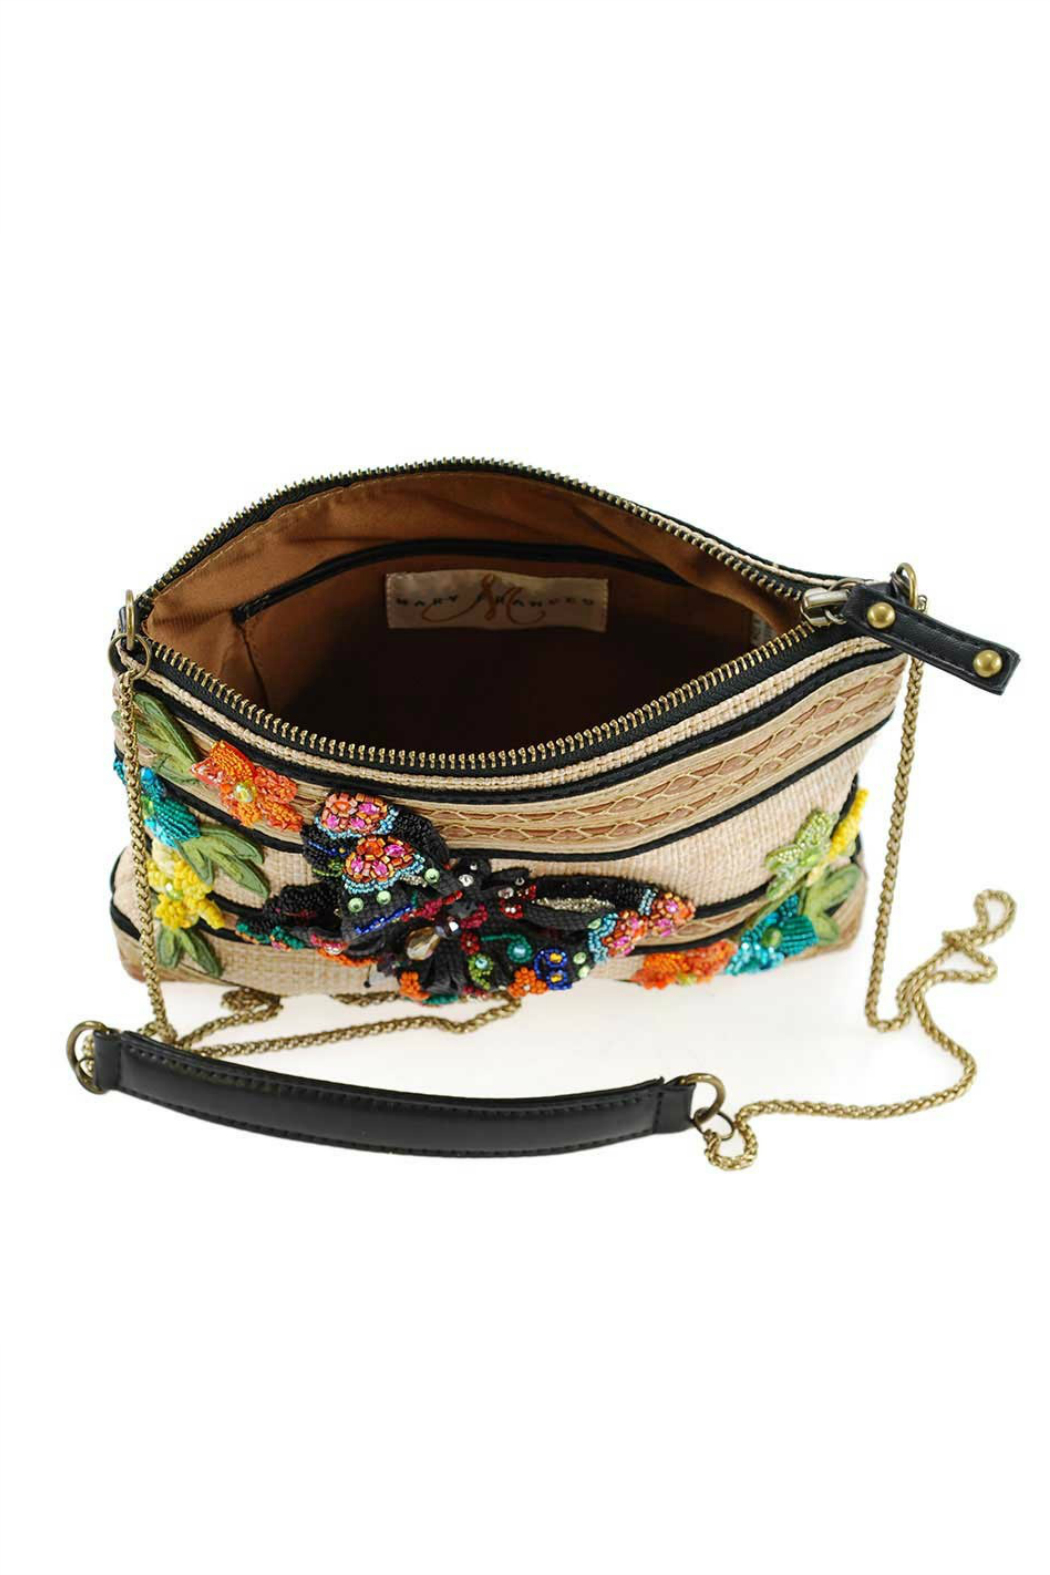 Mary Frances Accessories Butterfly Fantasy Crossbody - Side Cropped Image